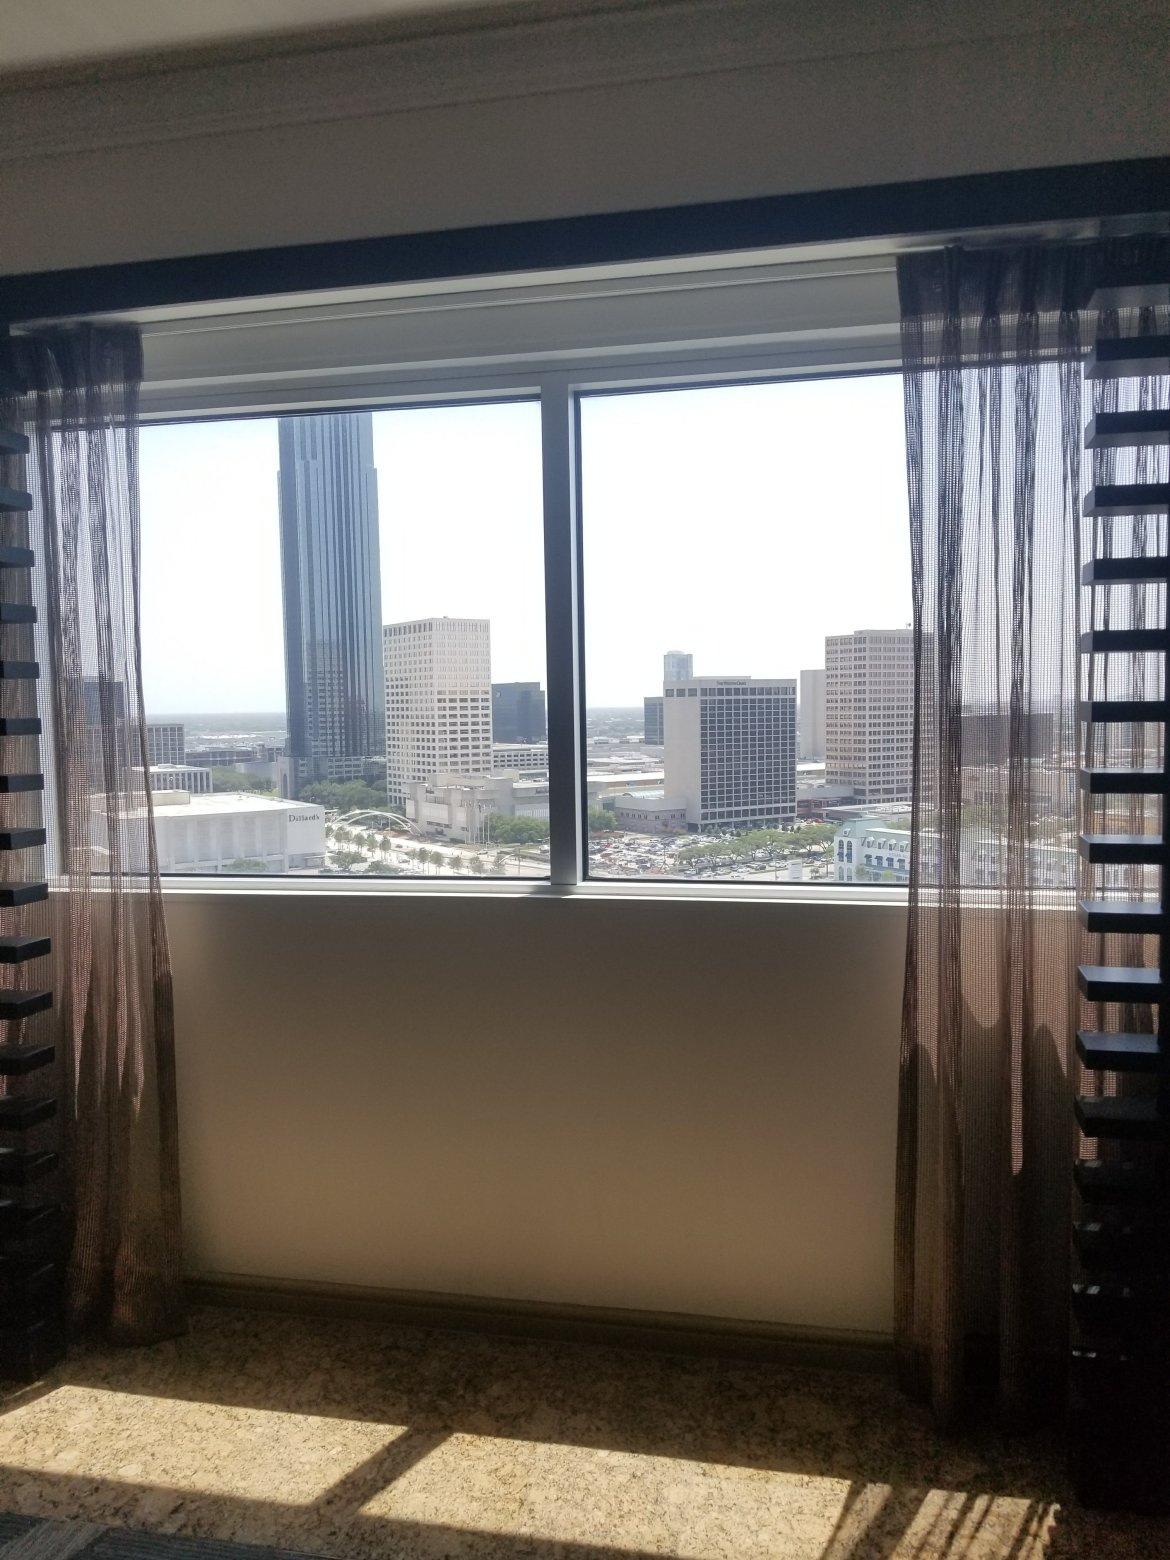 Create A Date Getaway In Uptown Houston: Featuring Royal Sonesta Houston